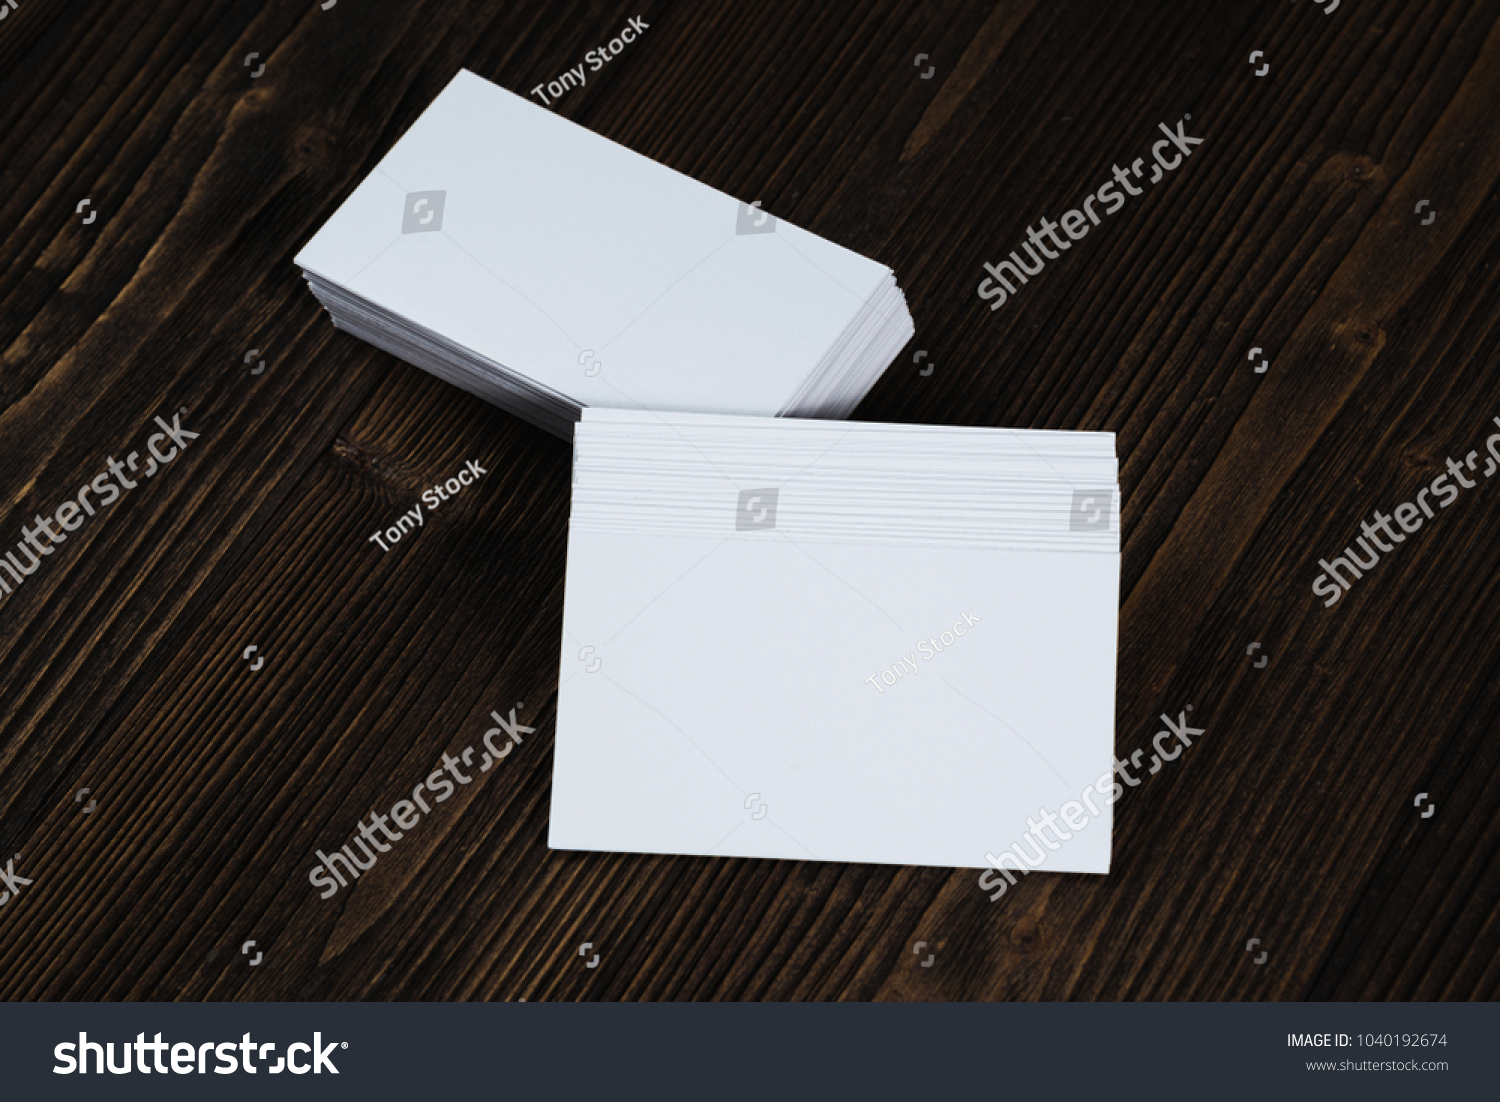 blank business cards on wooden working table with copy space for add